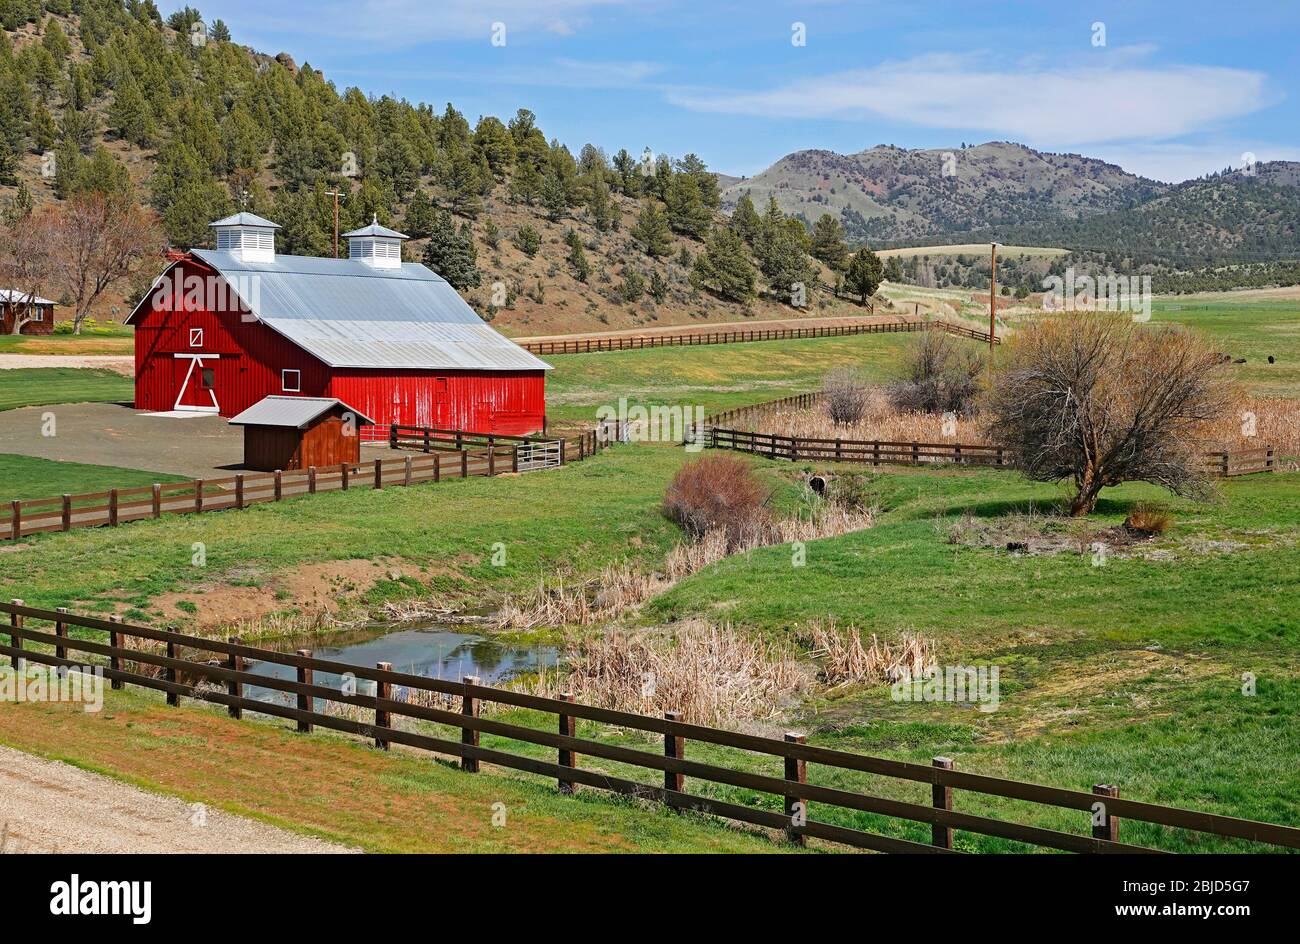 A beautiful red barn on a ranch near the John Day River in central Oregon. Stock Photo